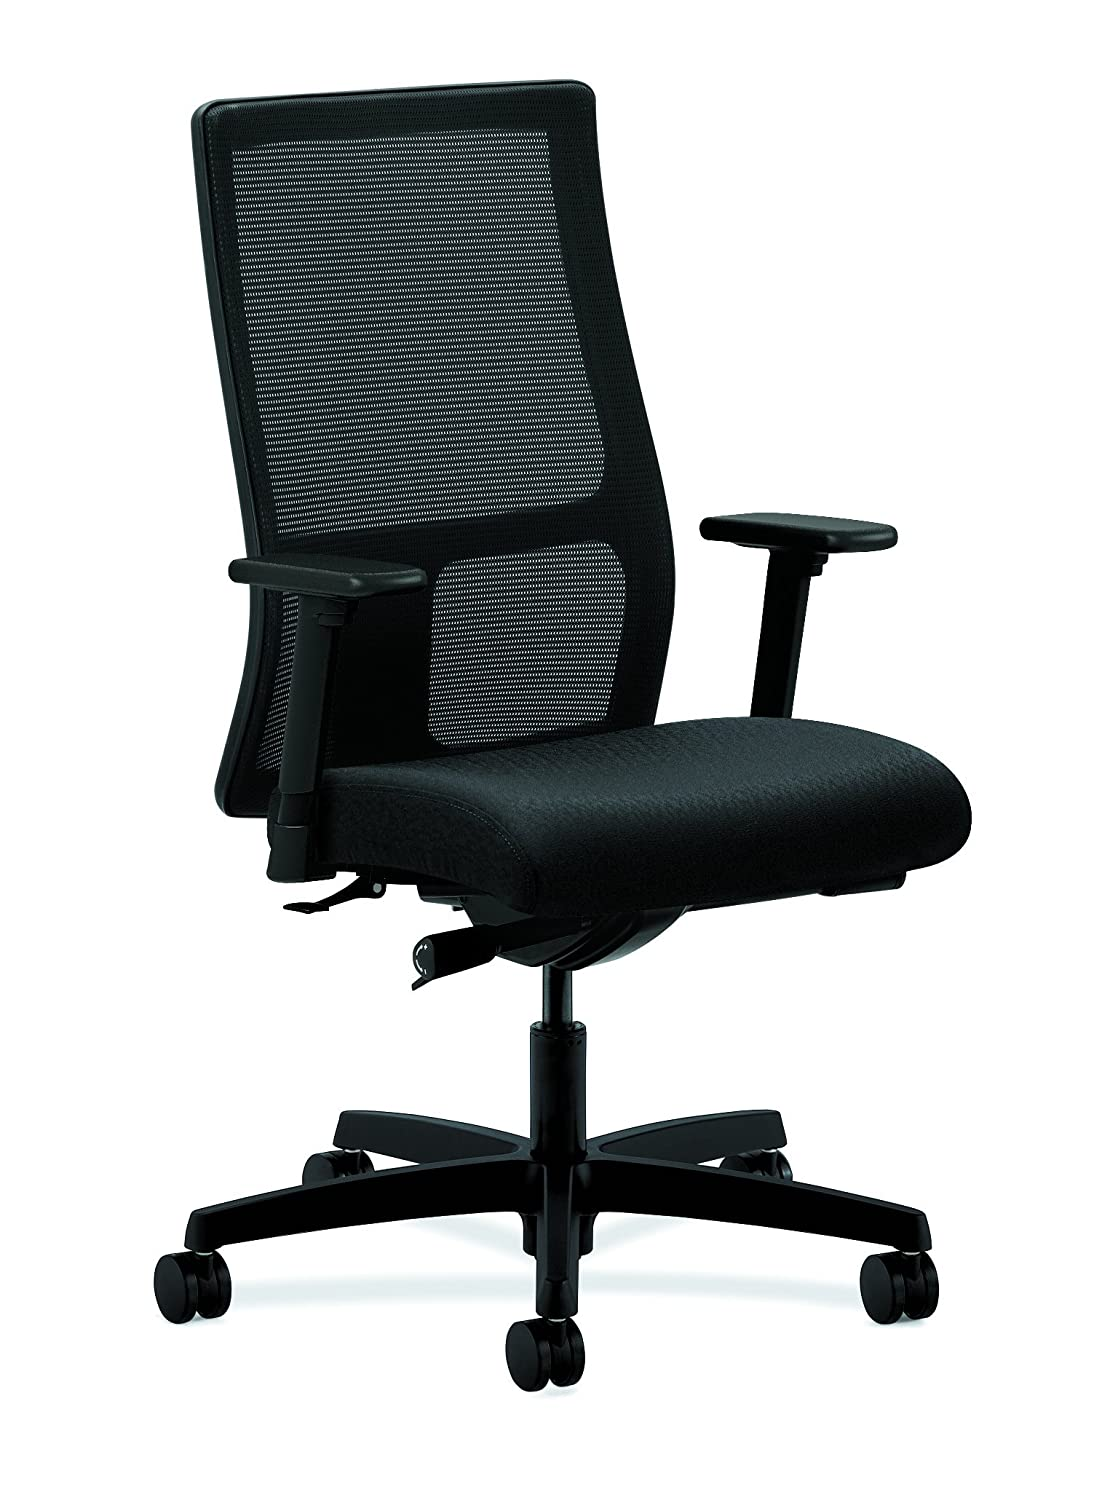 Amazon.com: HON Ignition Series Mid-Back Work Chair - Mesh Computer Chair  for Office Desk, Black (HIWM2): Kitchen & Dining